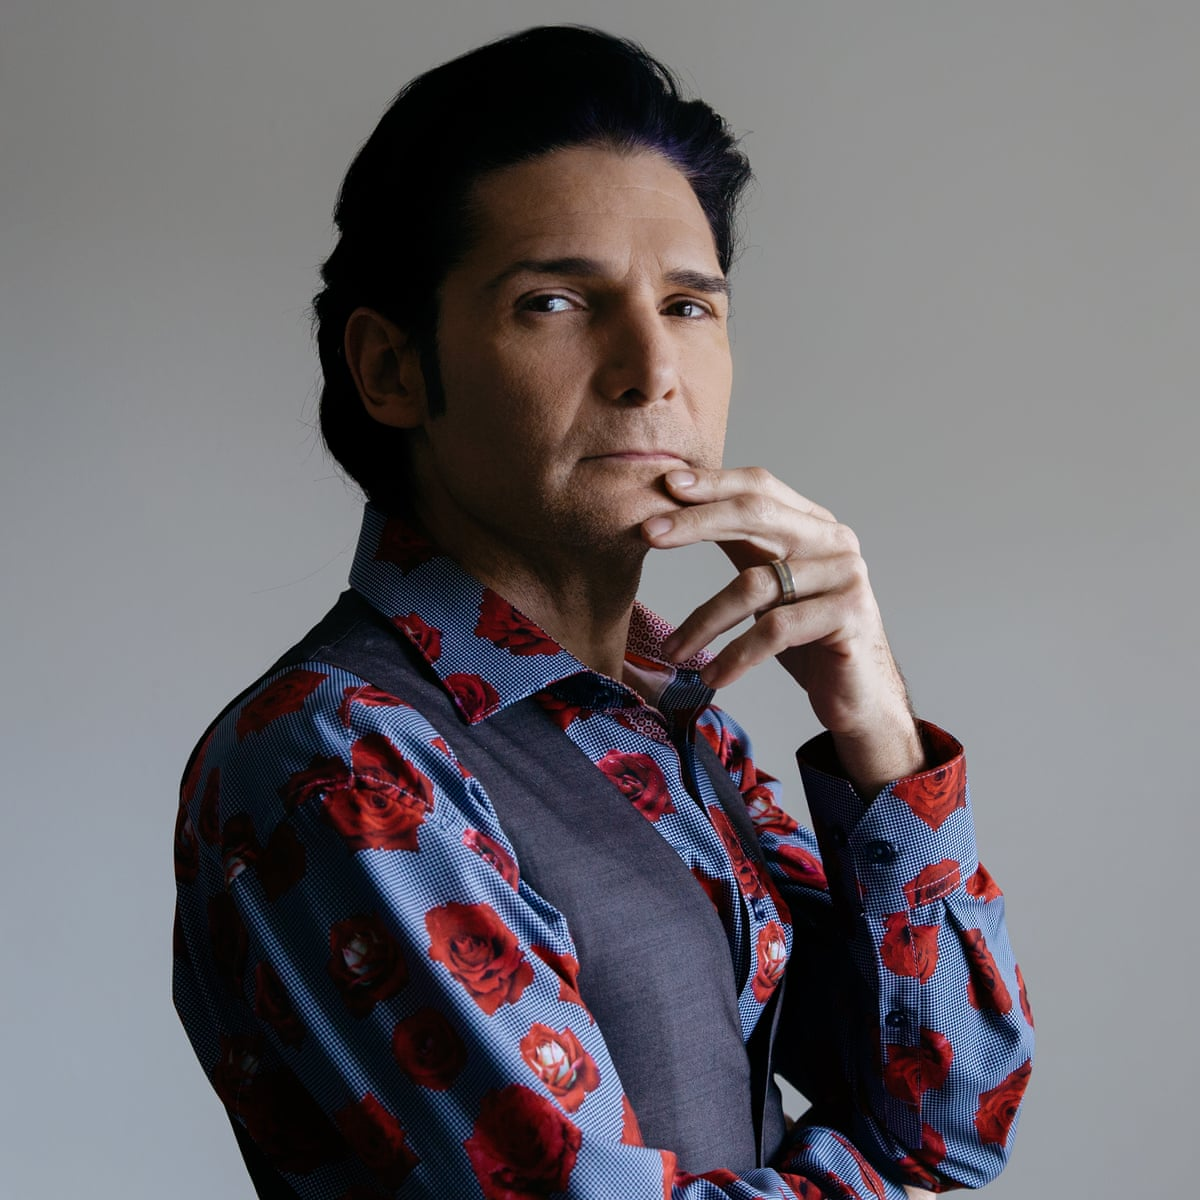 Abused Movies Porn Video corey feldman: 'the biggest problem in hollywood is